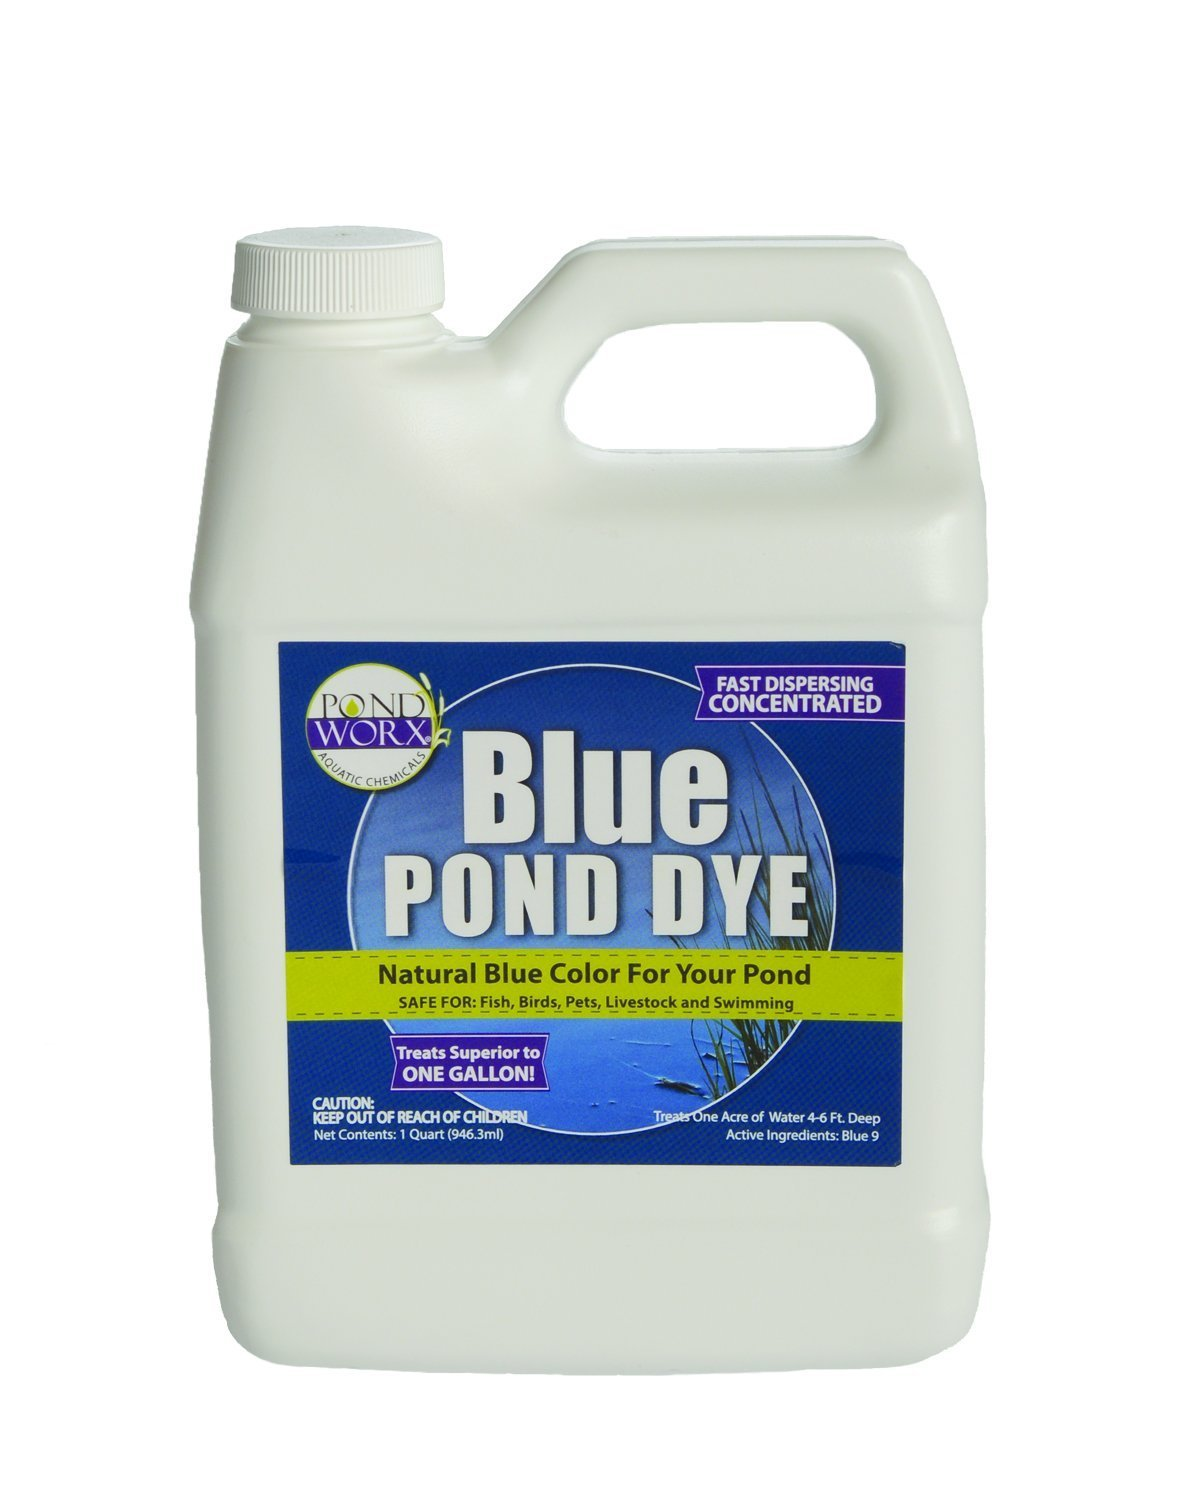 Pondworx Lake and Pond Dye - Blue Ultra Concentrated - 1 Quart by PondWorx